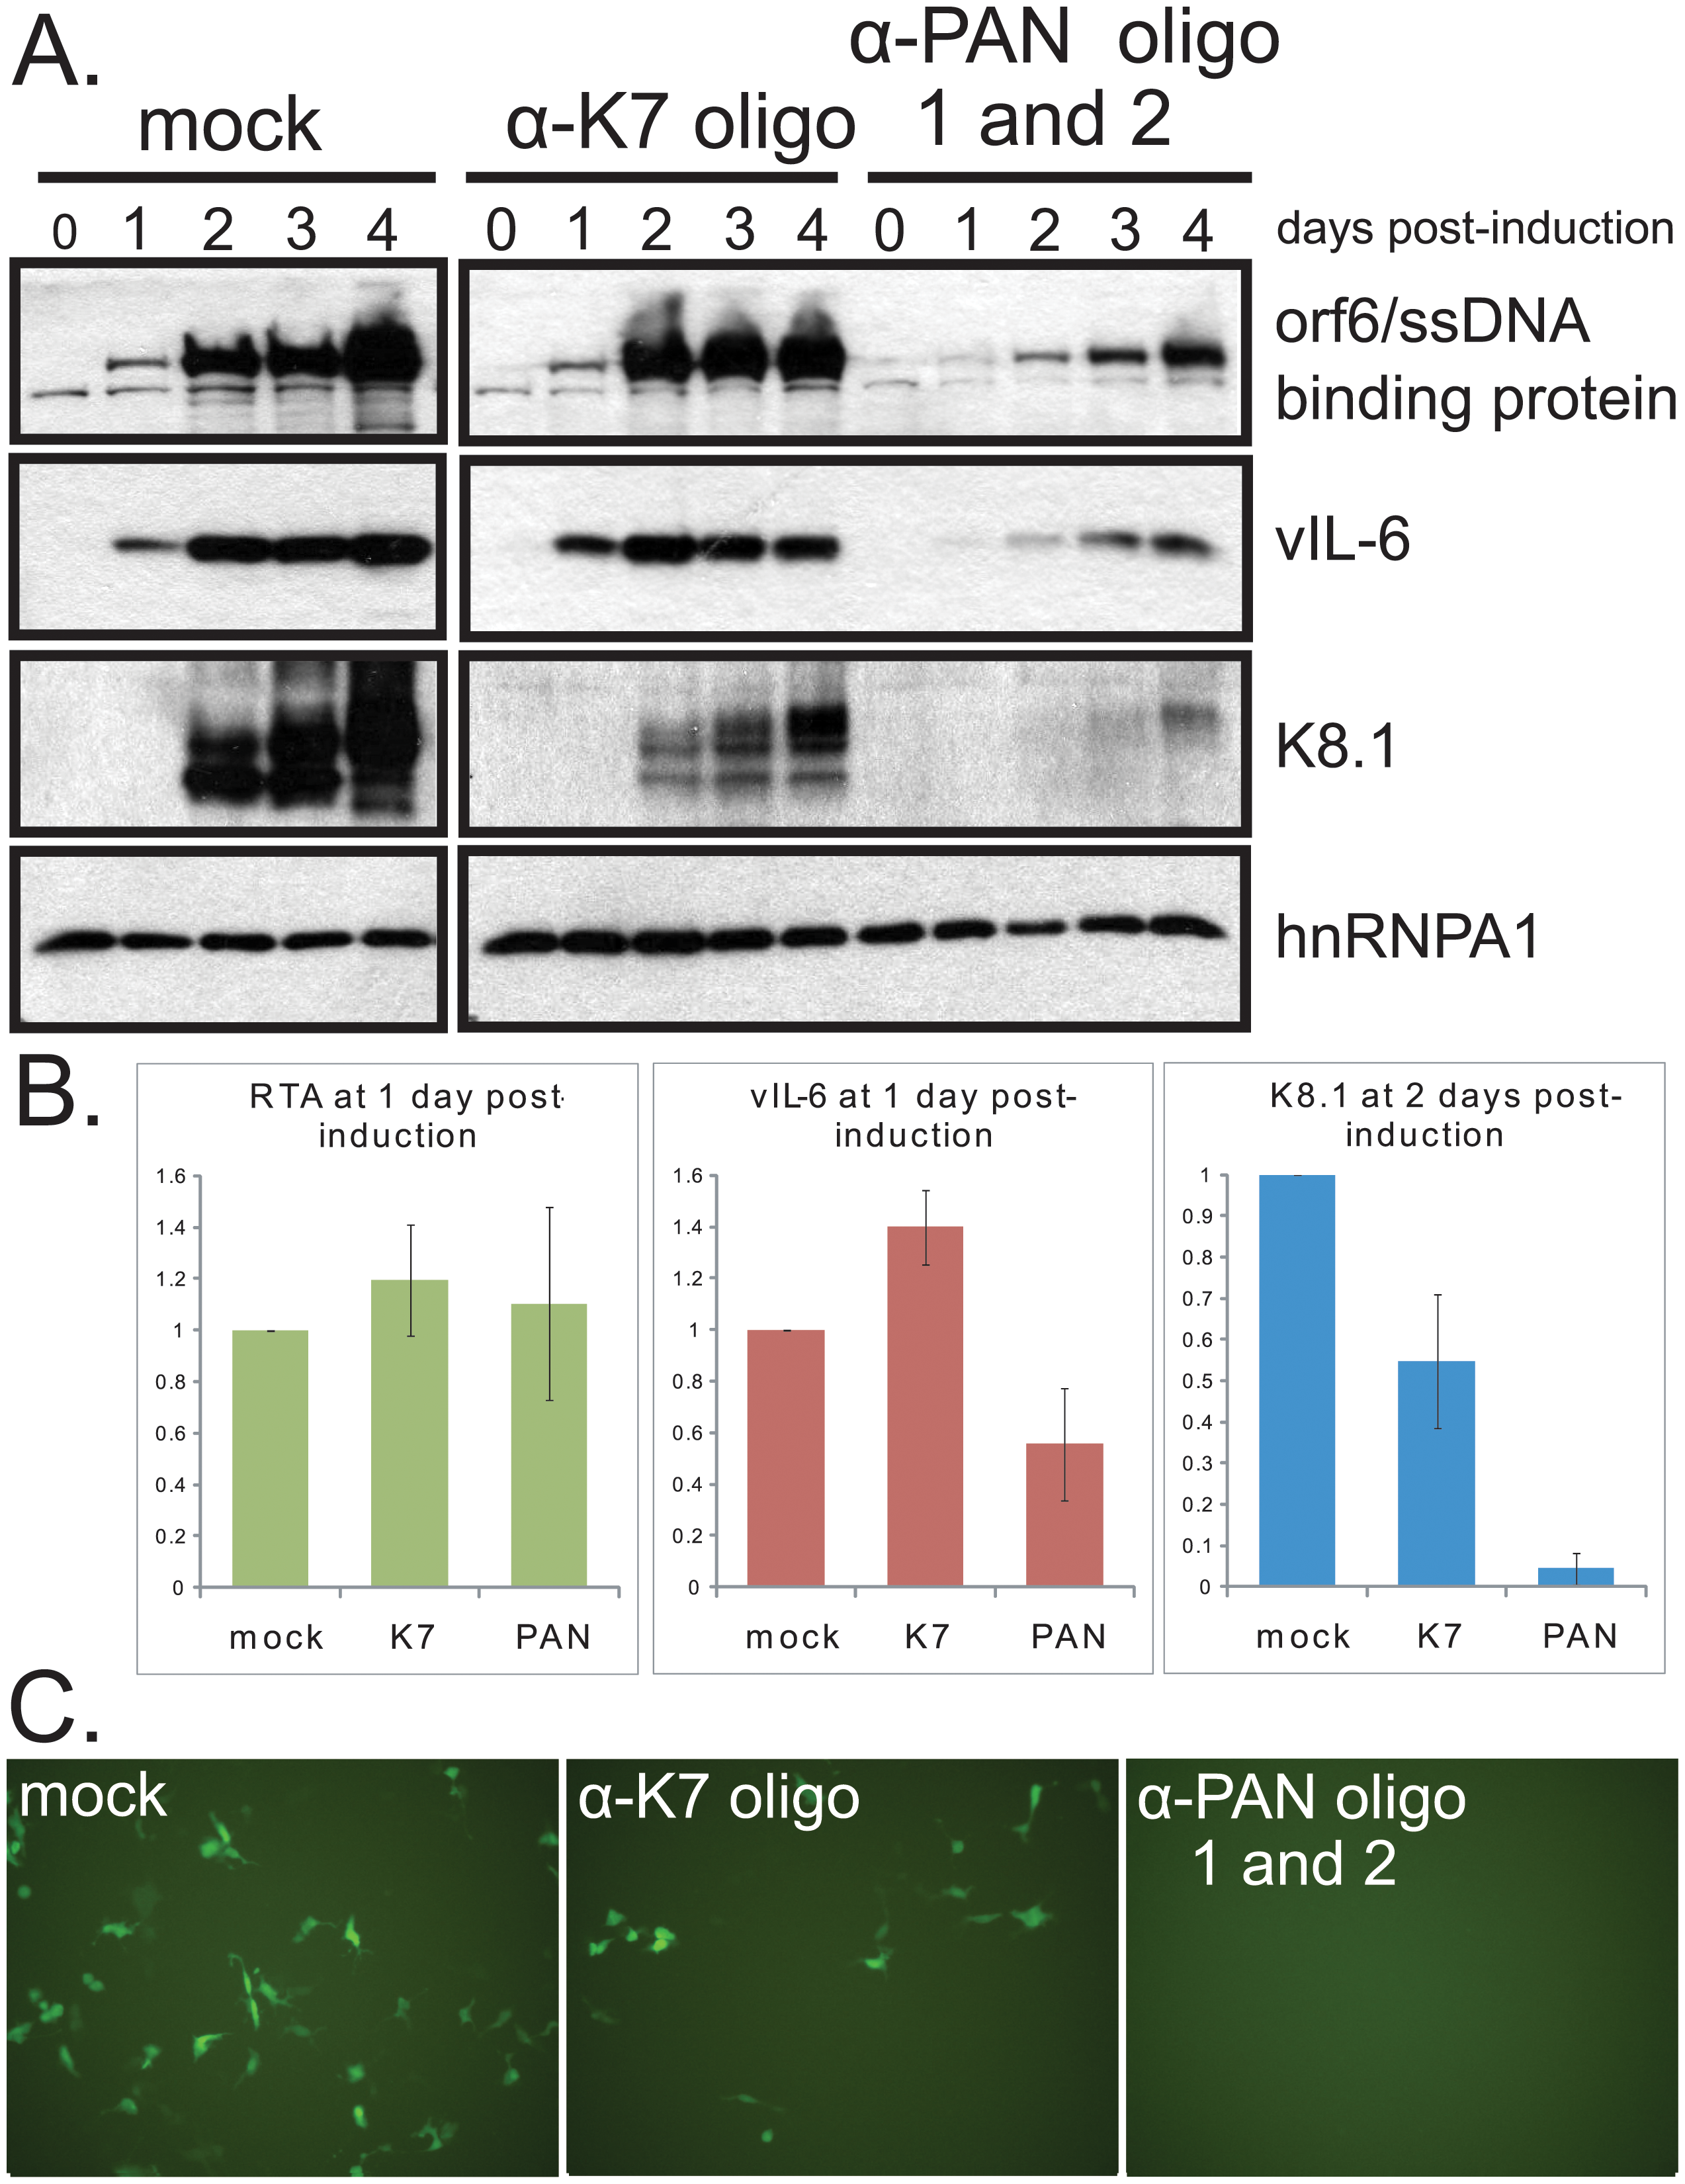 Knockdown of PAN RNA adversely affects gene expression in iSLK.219 cells, with a more pronounced effect on late genes.